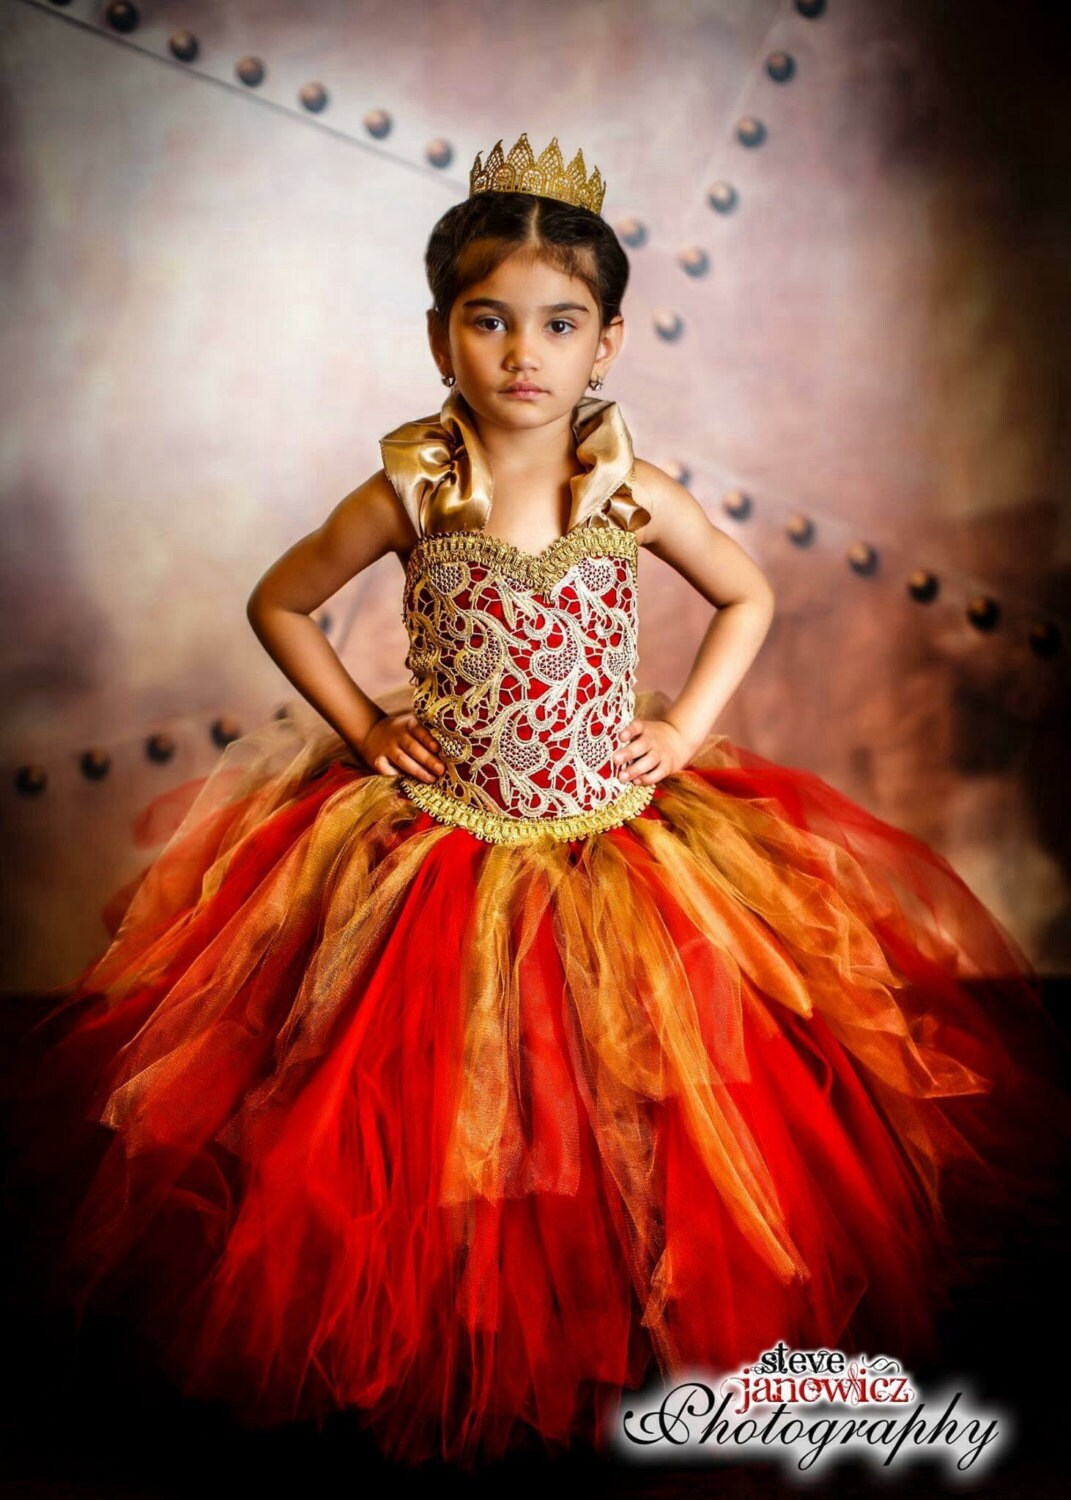 Red Dress Gold Dress Wedding Dress Flower Girl Dress Princess